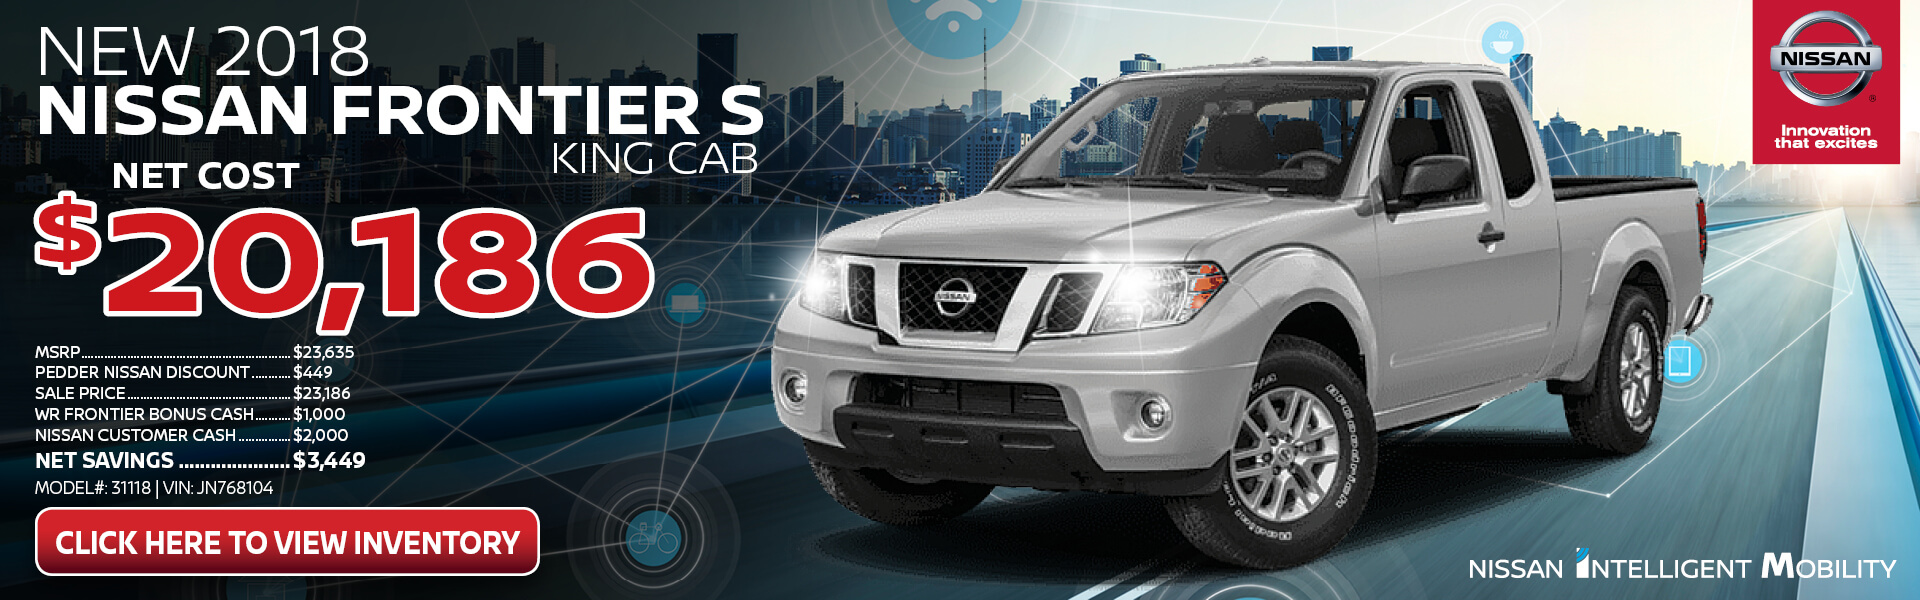 Nissan Frontier Purchase $20,186